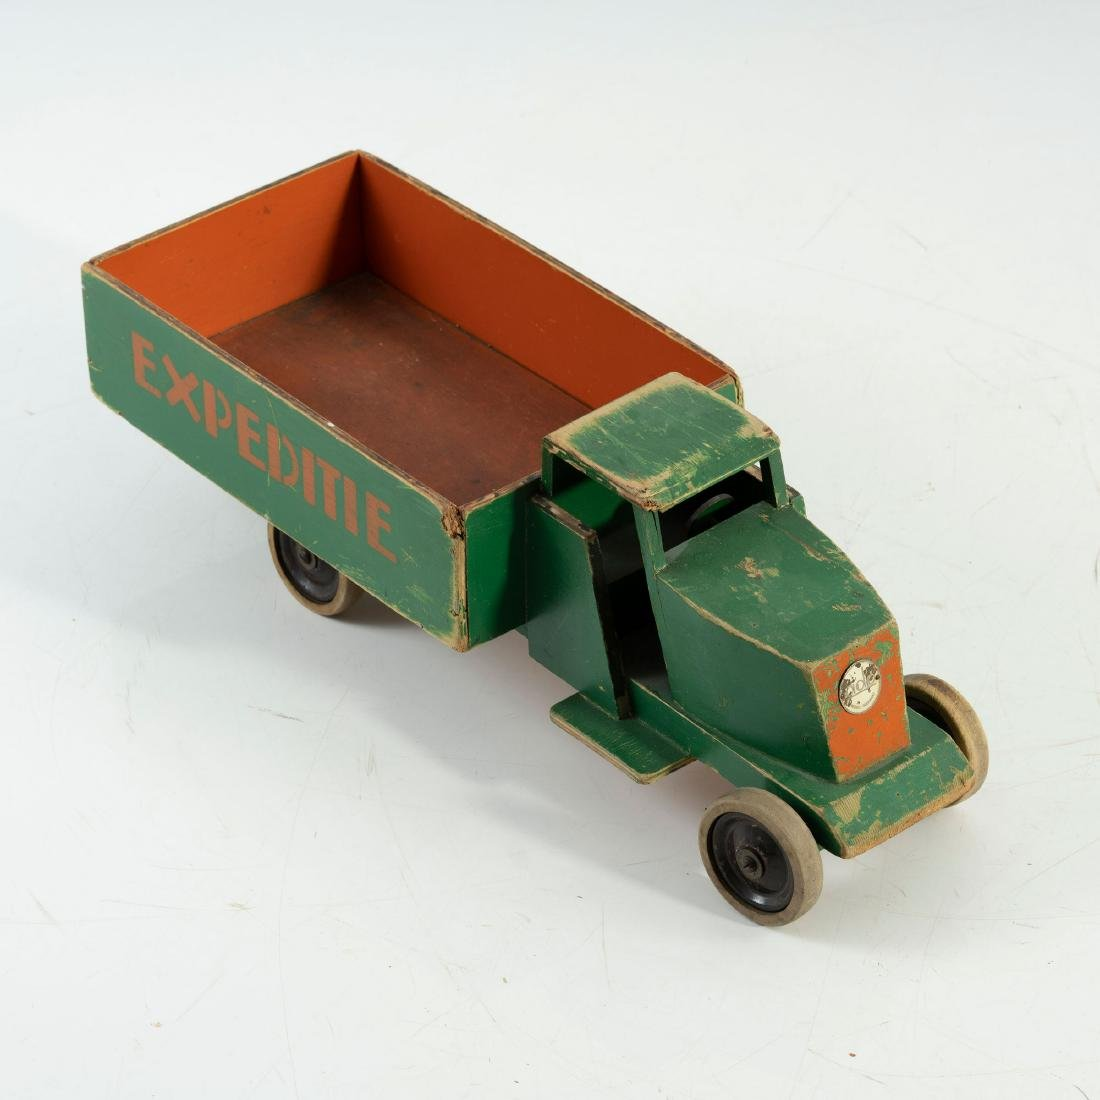 'Expeditie' lorry, c. 1950 - 2